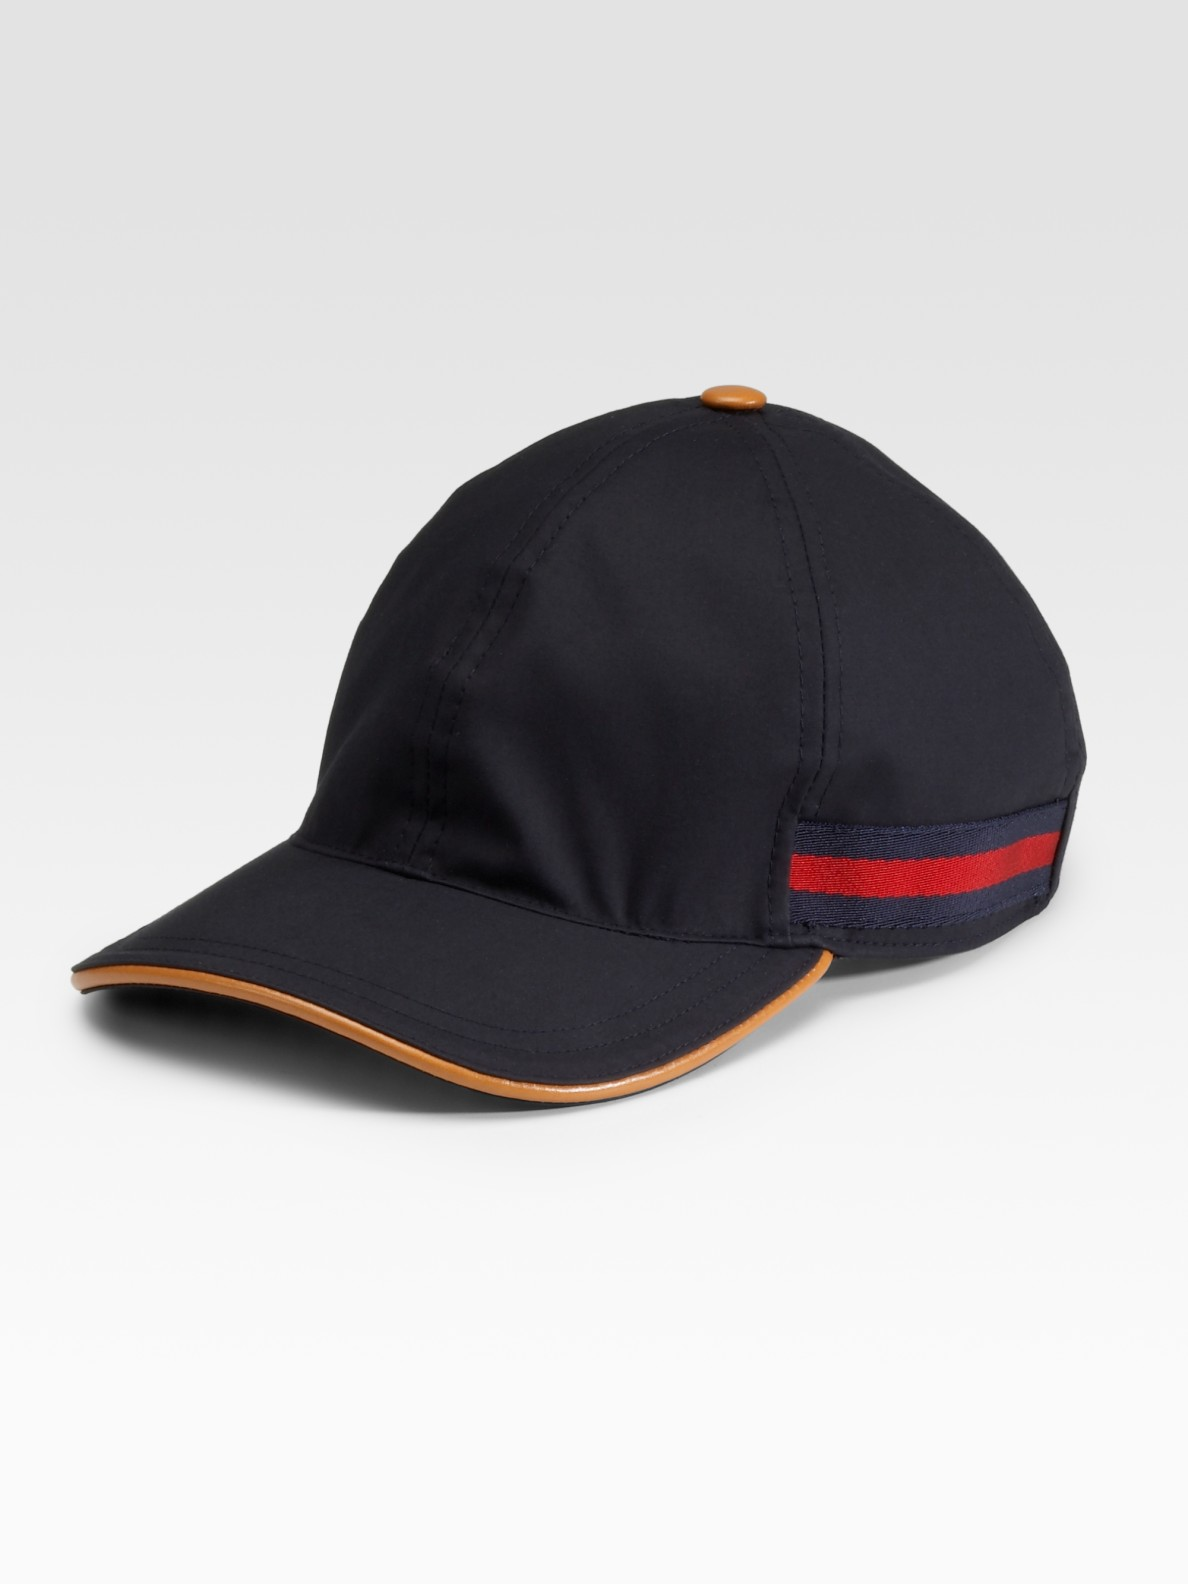 Lyst - Gucci Baseball Hat in Blue for Men ed635765a2e